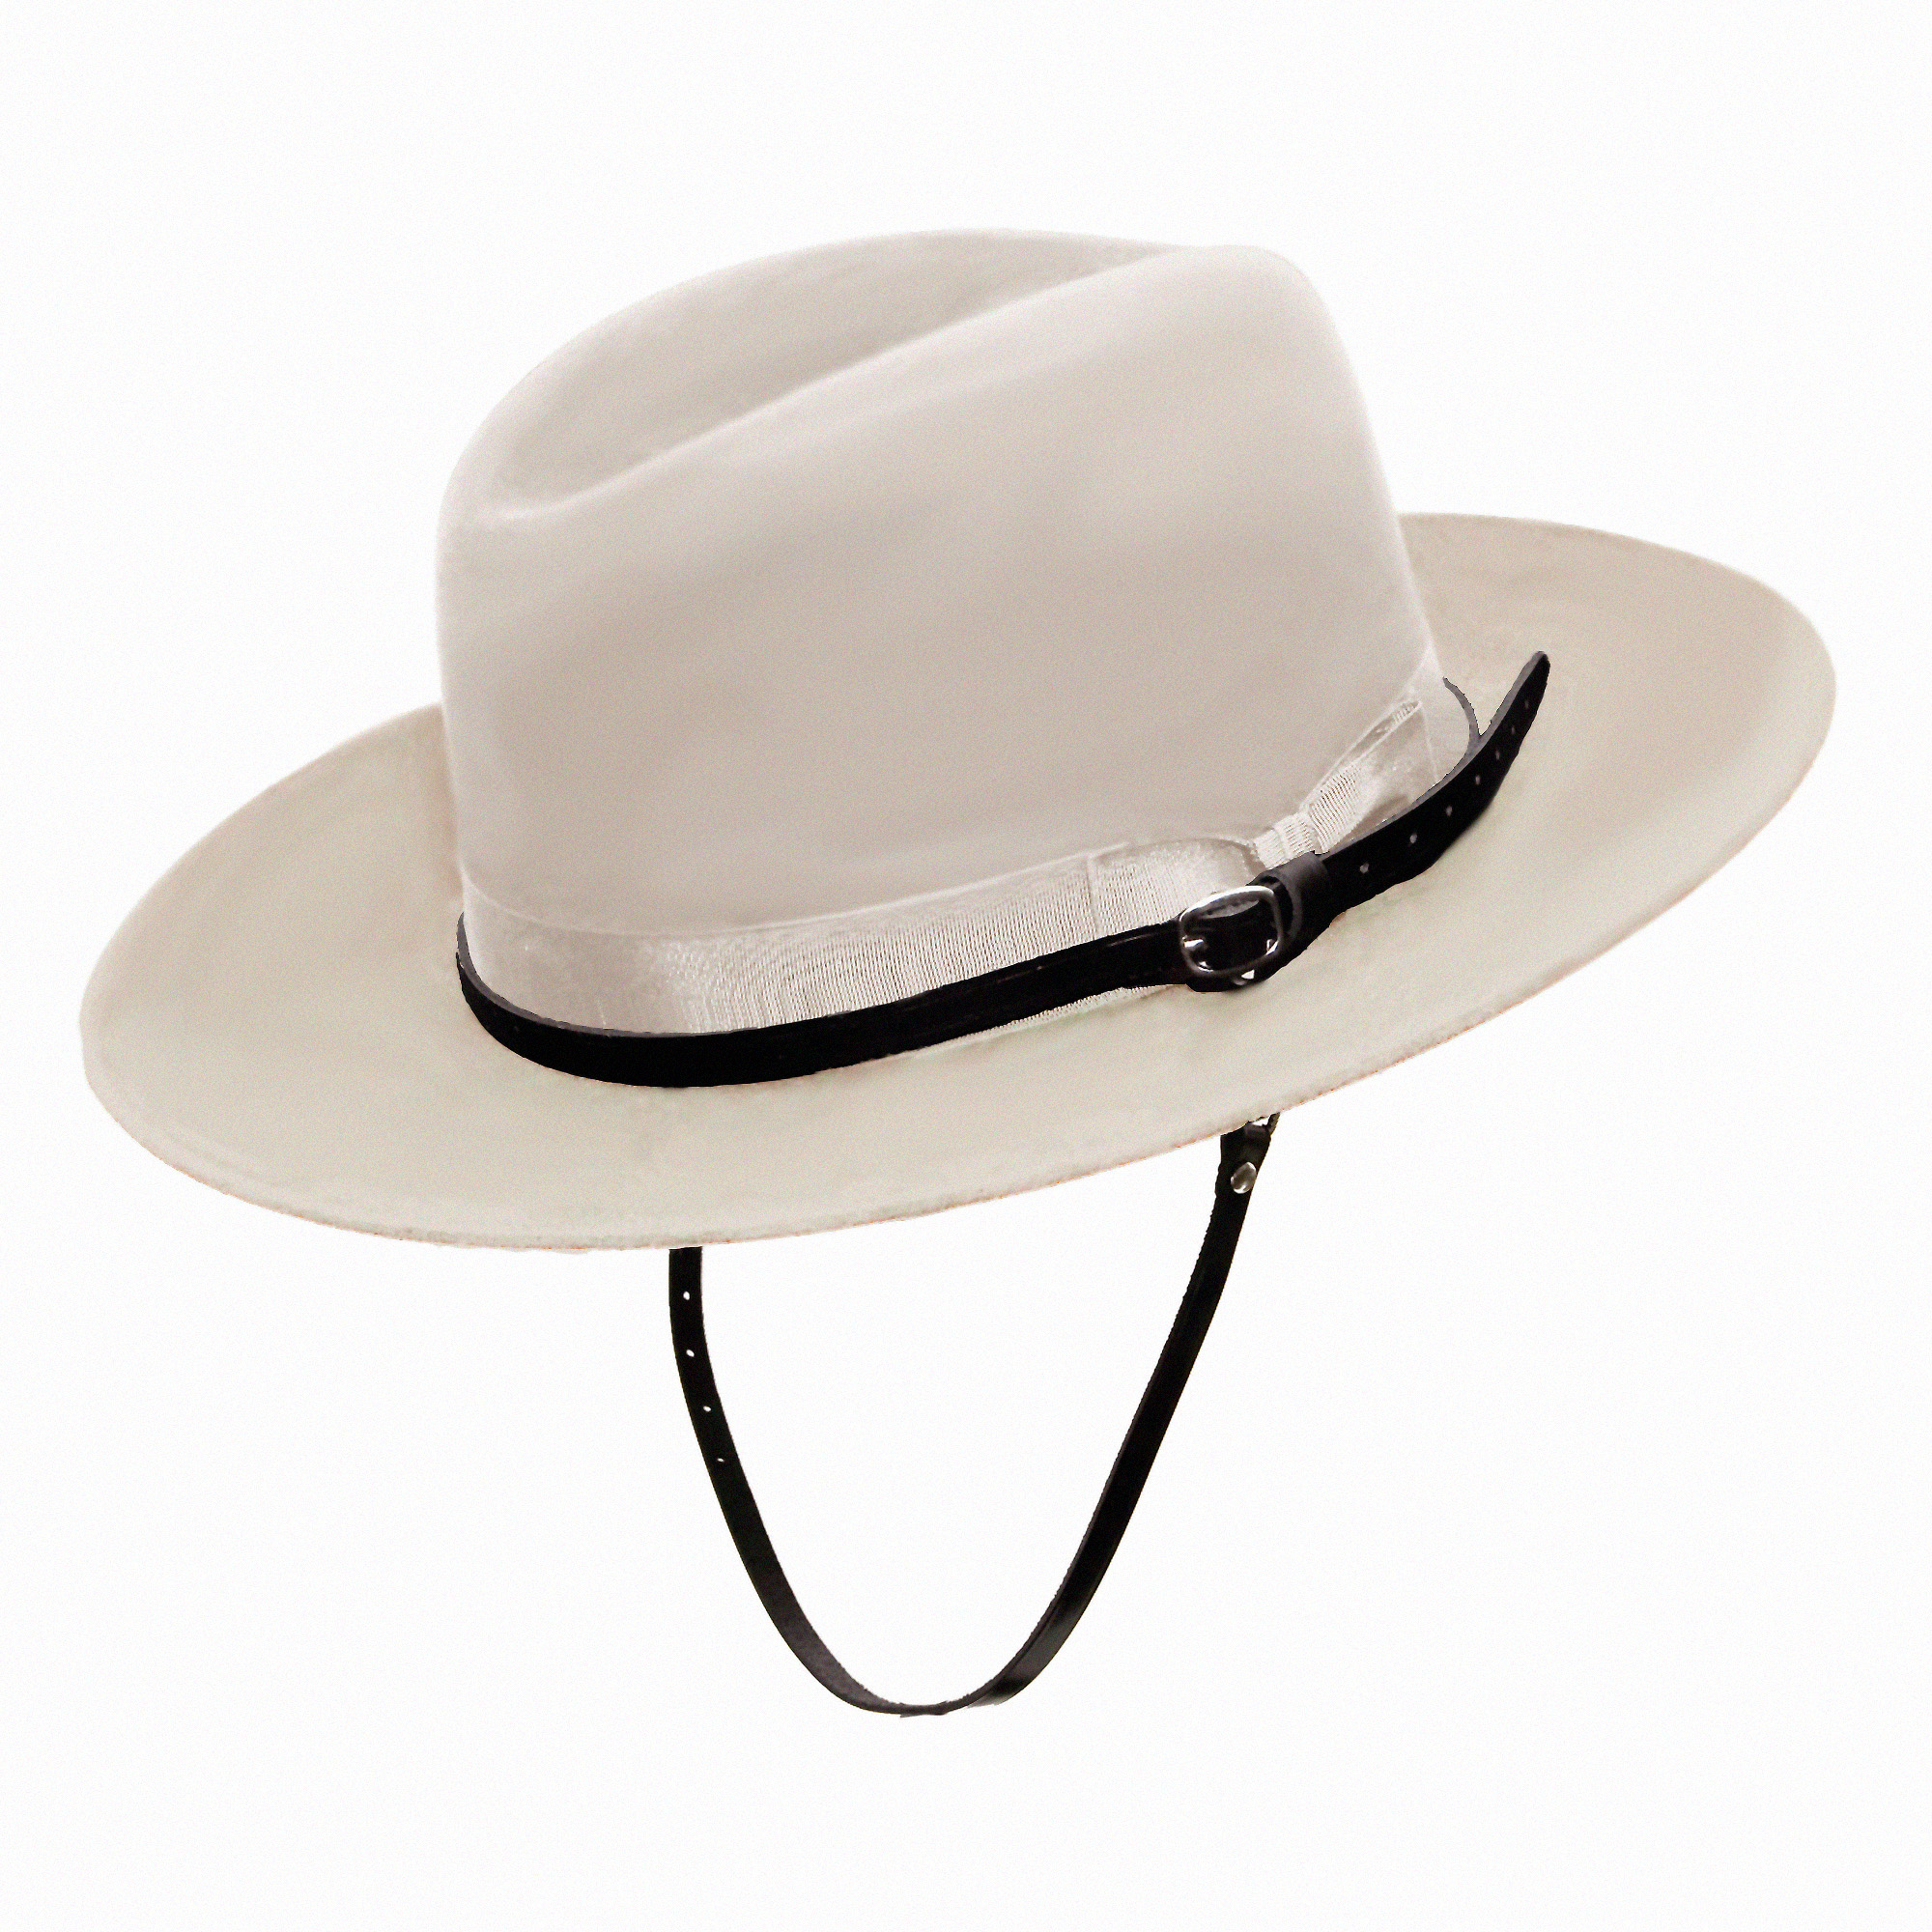 312894a6c2d3e Stetson Cavalry 5X Felt Hat - Silver Belly. Tap to expand